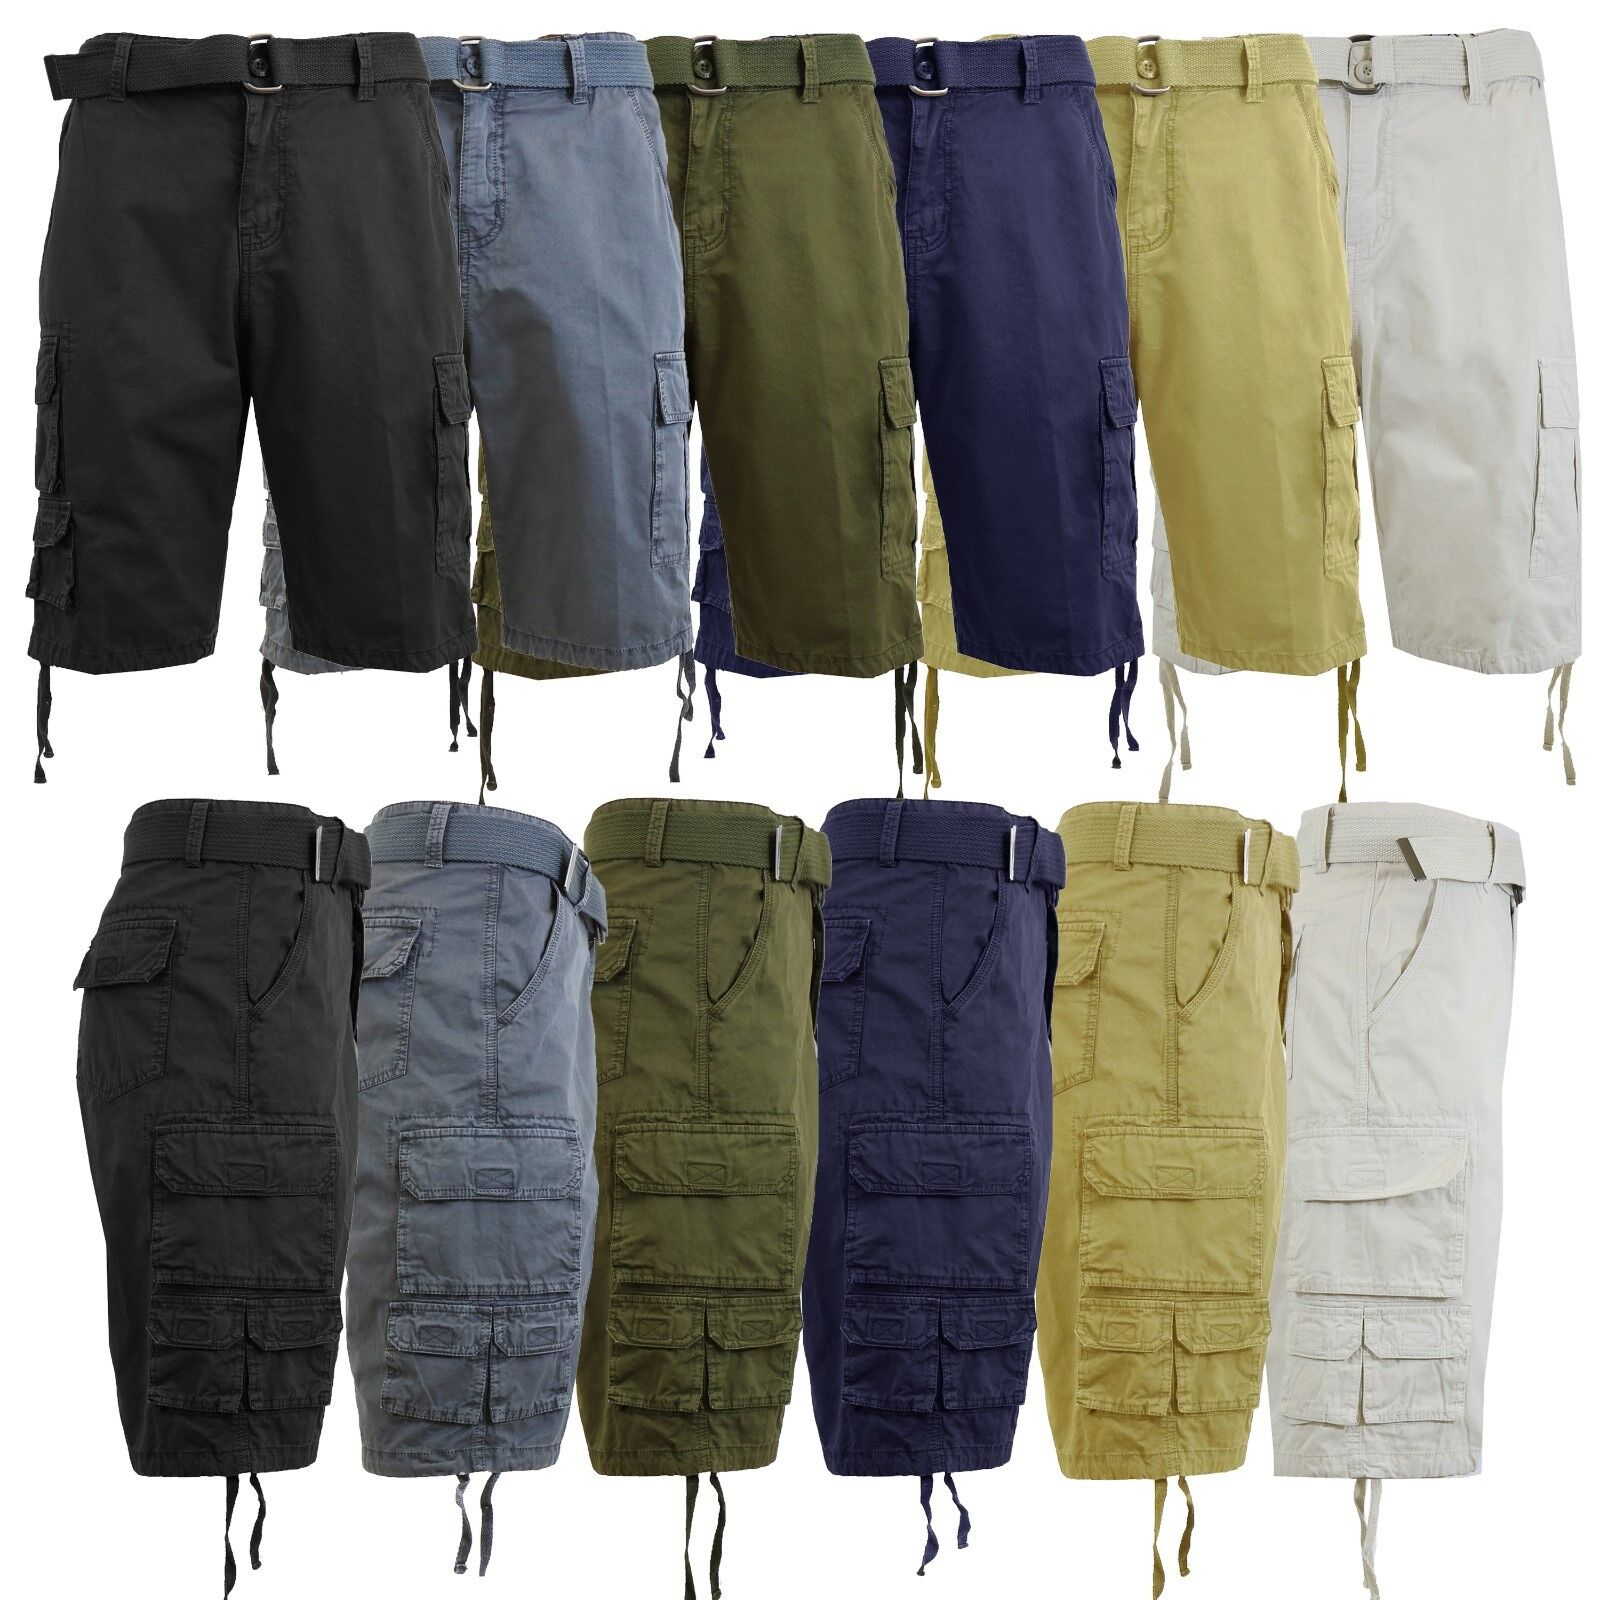 Mens Cargo Shorts With Belt Vintage Lounge 100% Cotton Multi-Pockets Hiking NEW Clothing, Shoes & Accessories